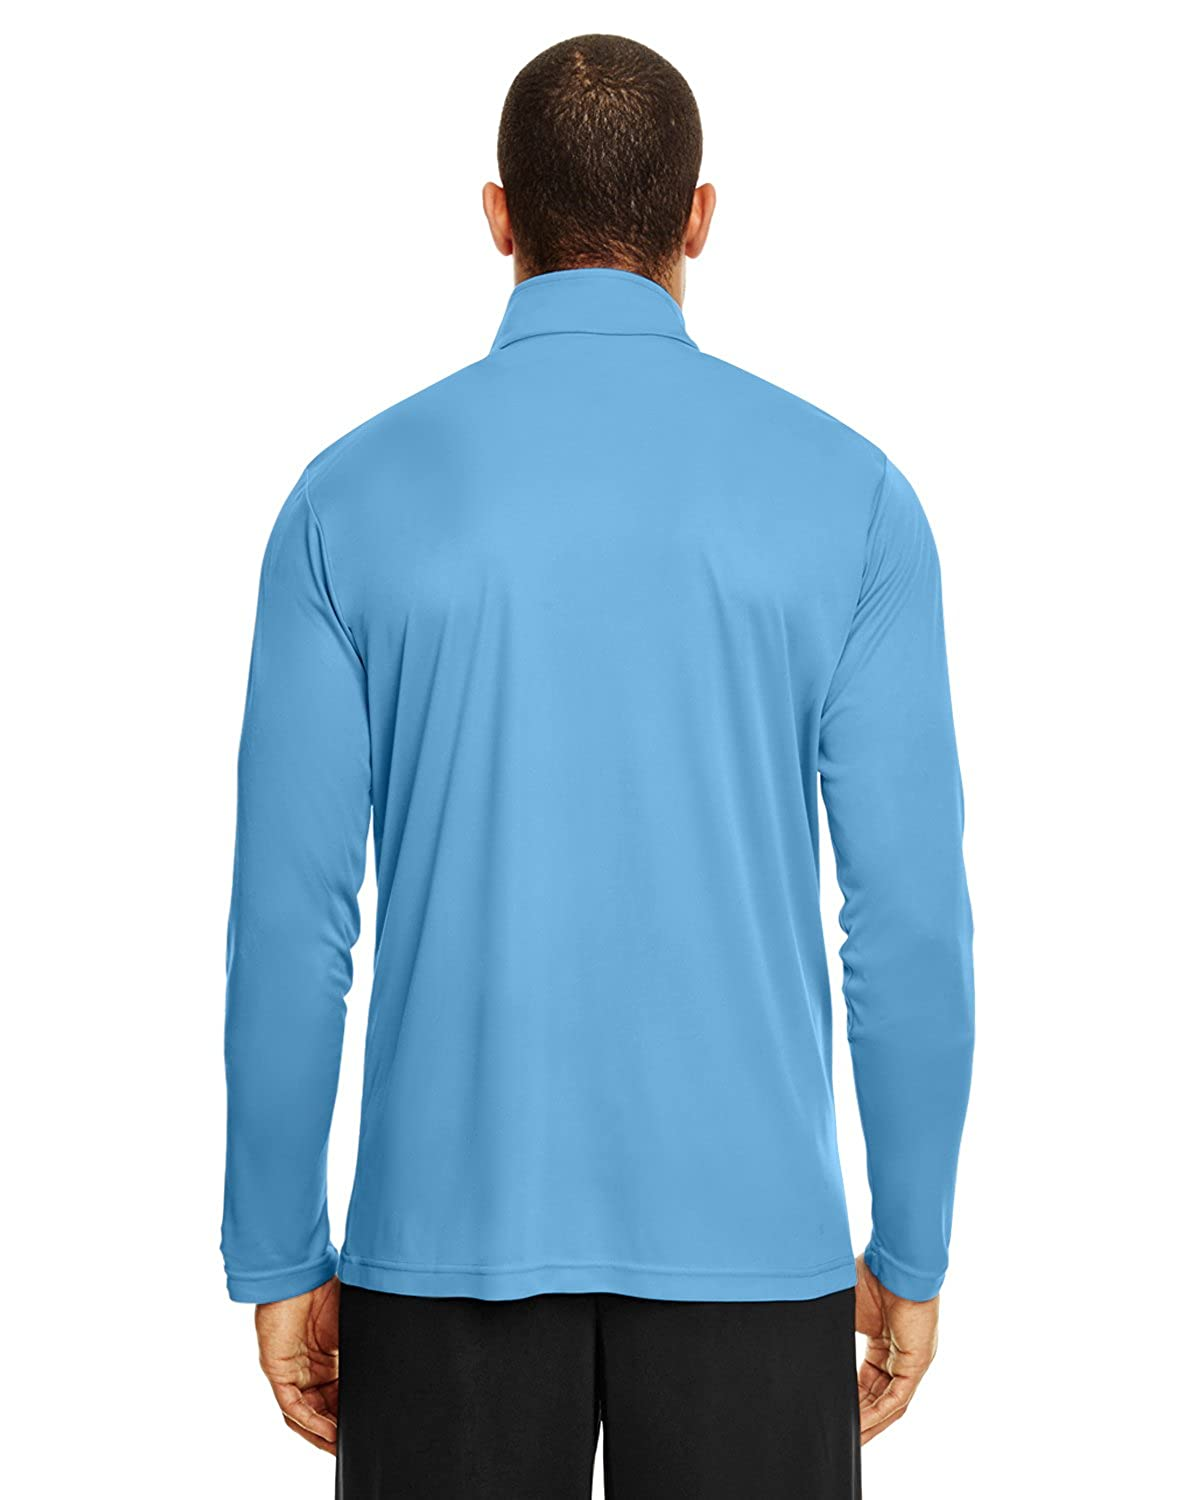 A Product of Team 365 Mens Zone Performance Quarter-Zip Bulk Saving